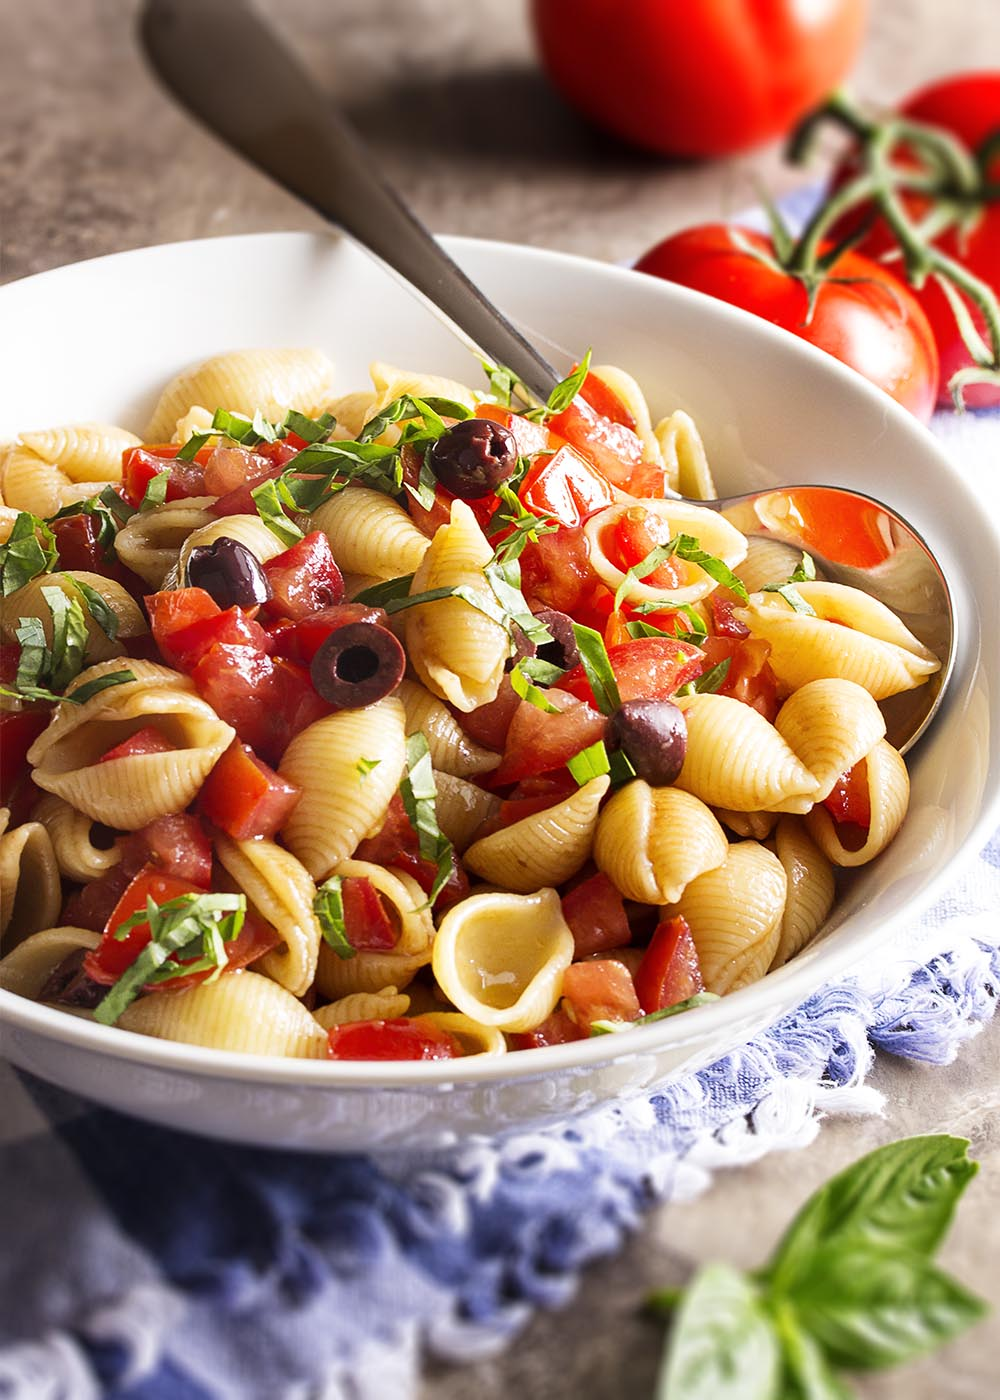 A large serving bowl of freshly cooked pasta shells tossed with ripe tomatoes, olives, basil, and olive oil.